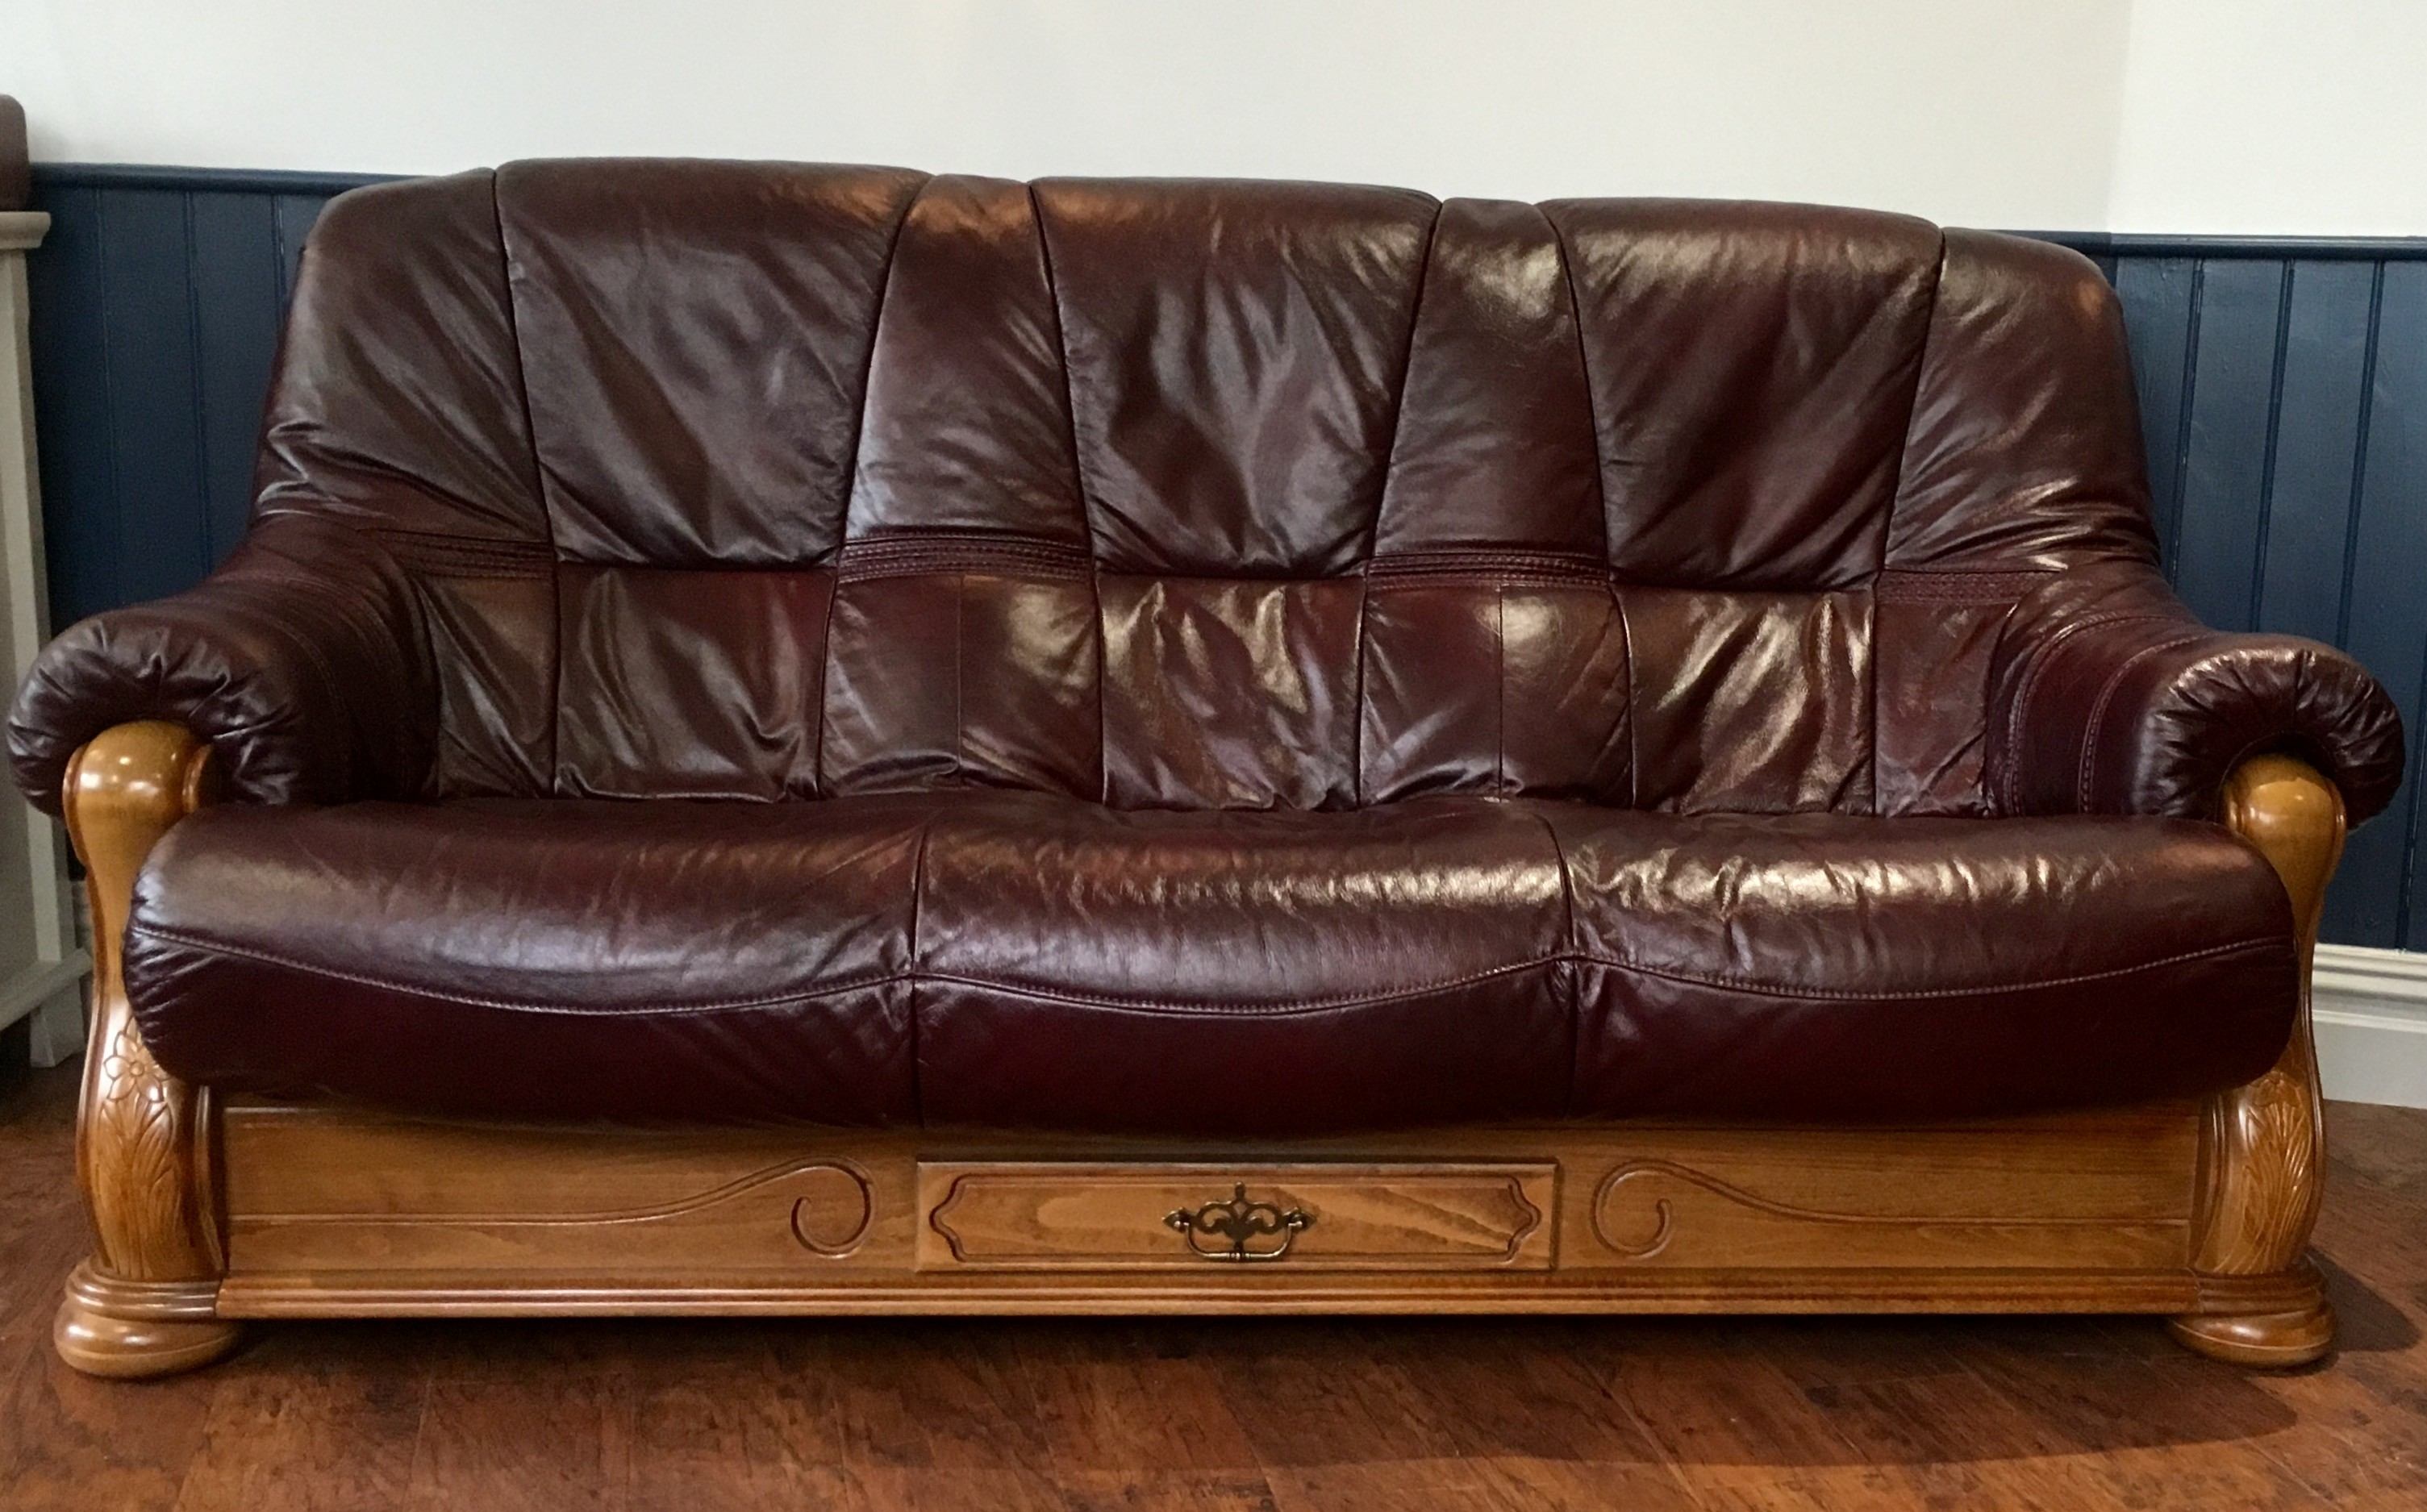 Burgundy Leather sofa Fantastic Burgundy Leather 3 Seat sofa and Reclining Chair Collection